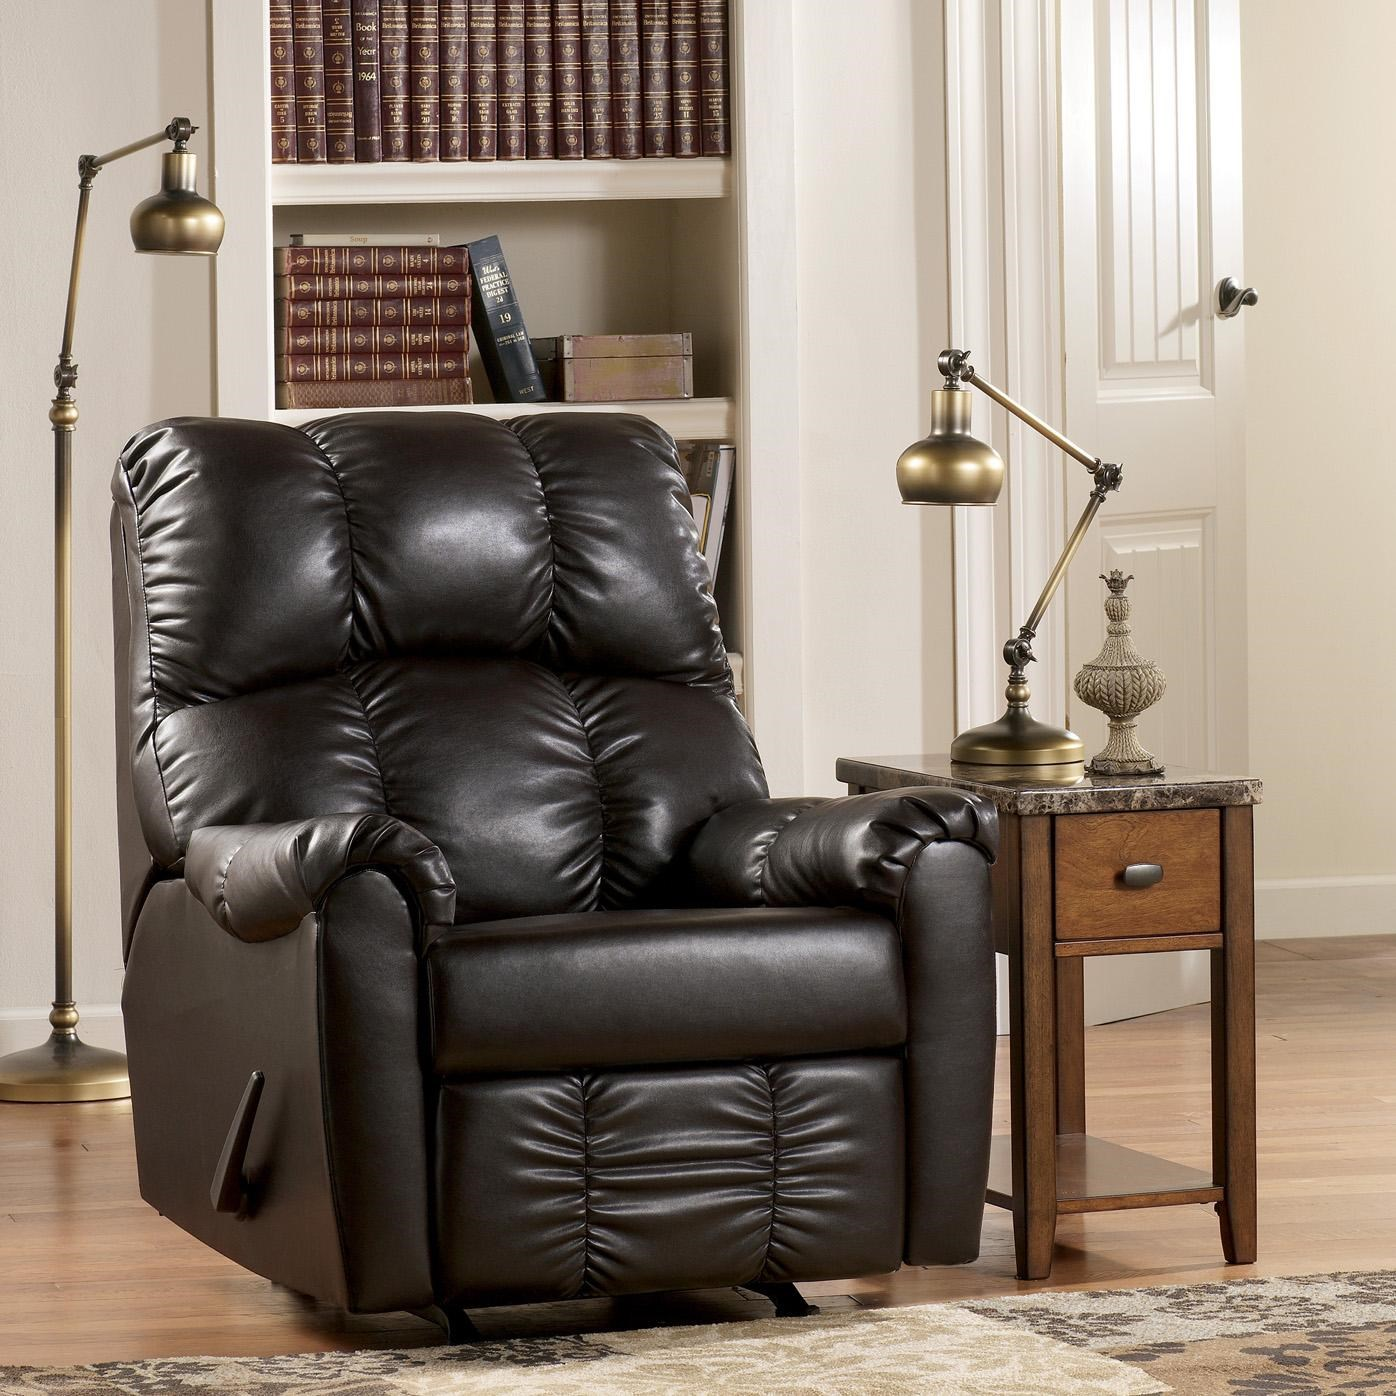 Signature Design by Ashley Rutledge Java Rocker Recliner